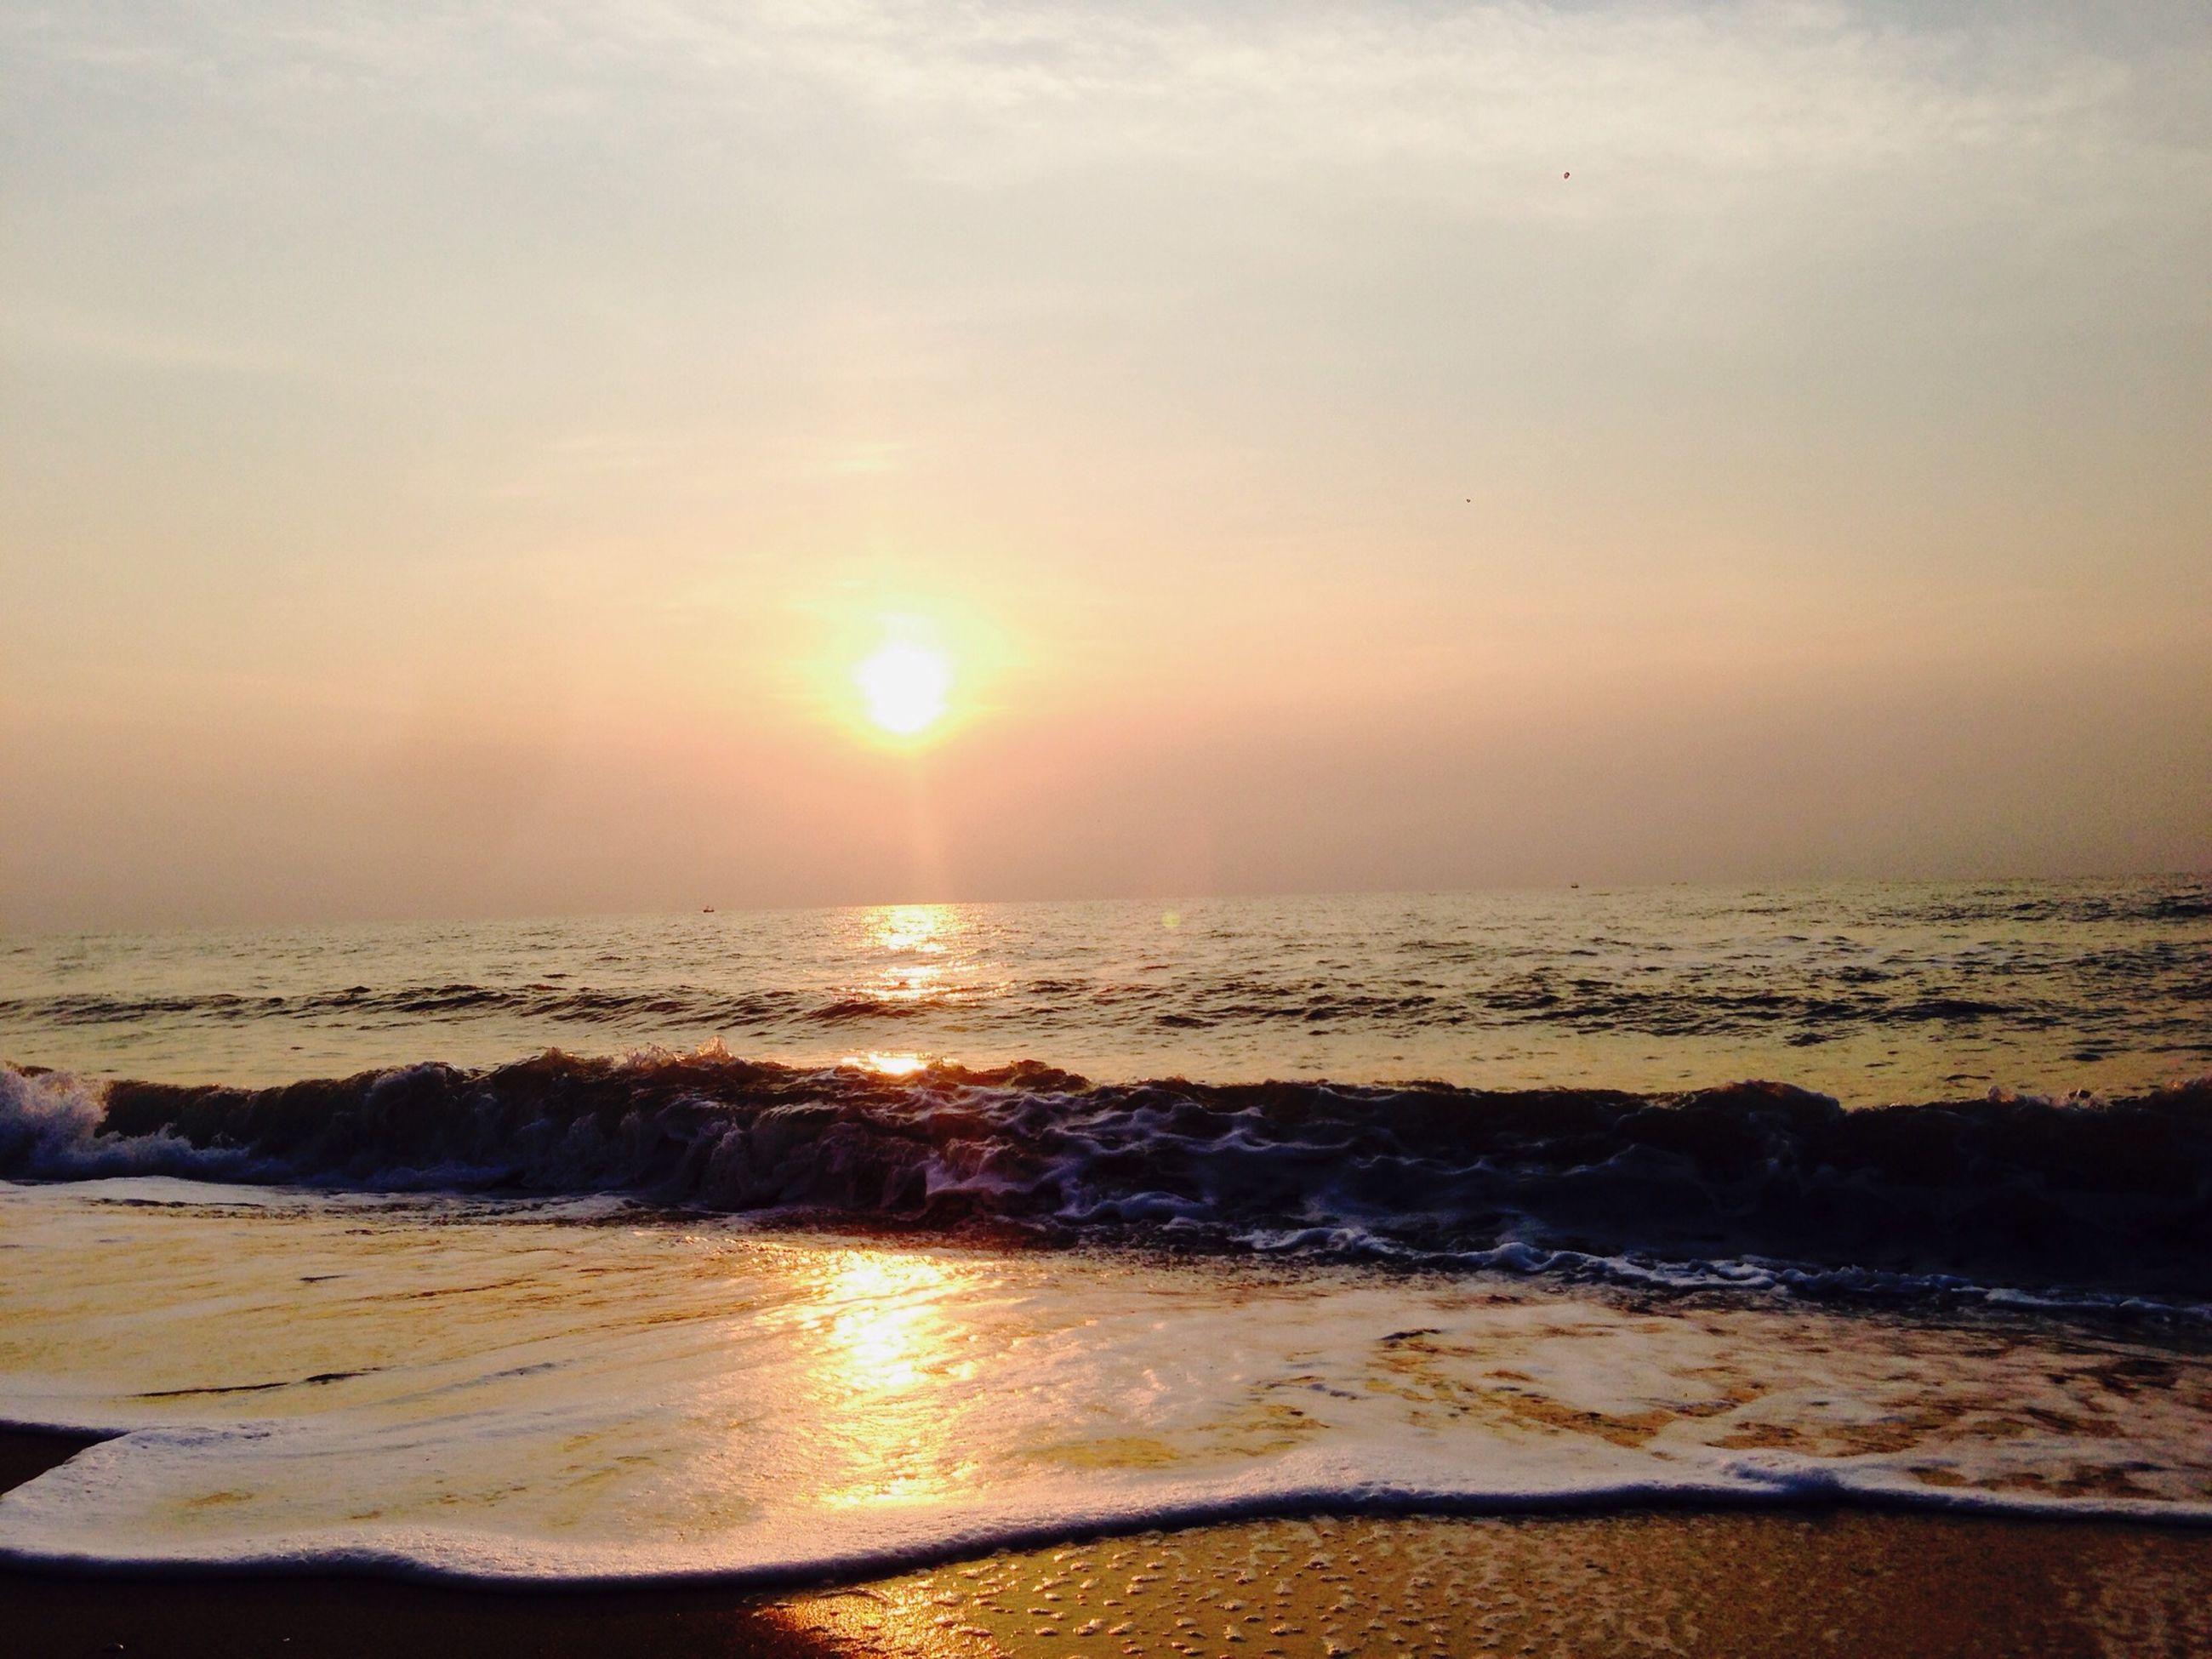 sea, sunset, beach, horizon over water, water, scenics, sun, shore, beauty in nature, tranquil scene, tranquility, wave, sky, idyllic, orange color, nature, sand, sunlight, surf, reflection